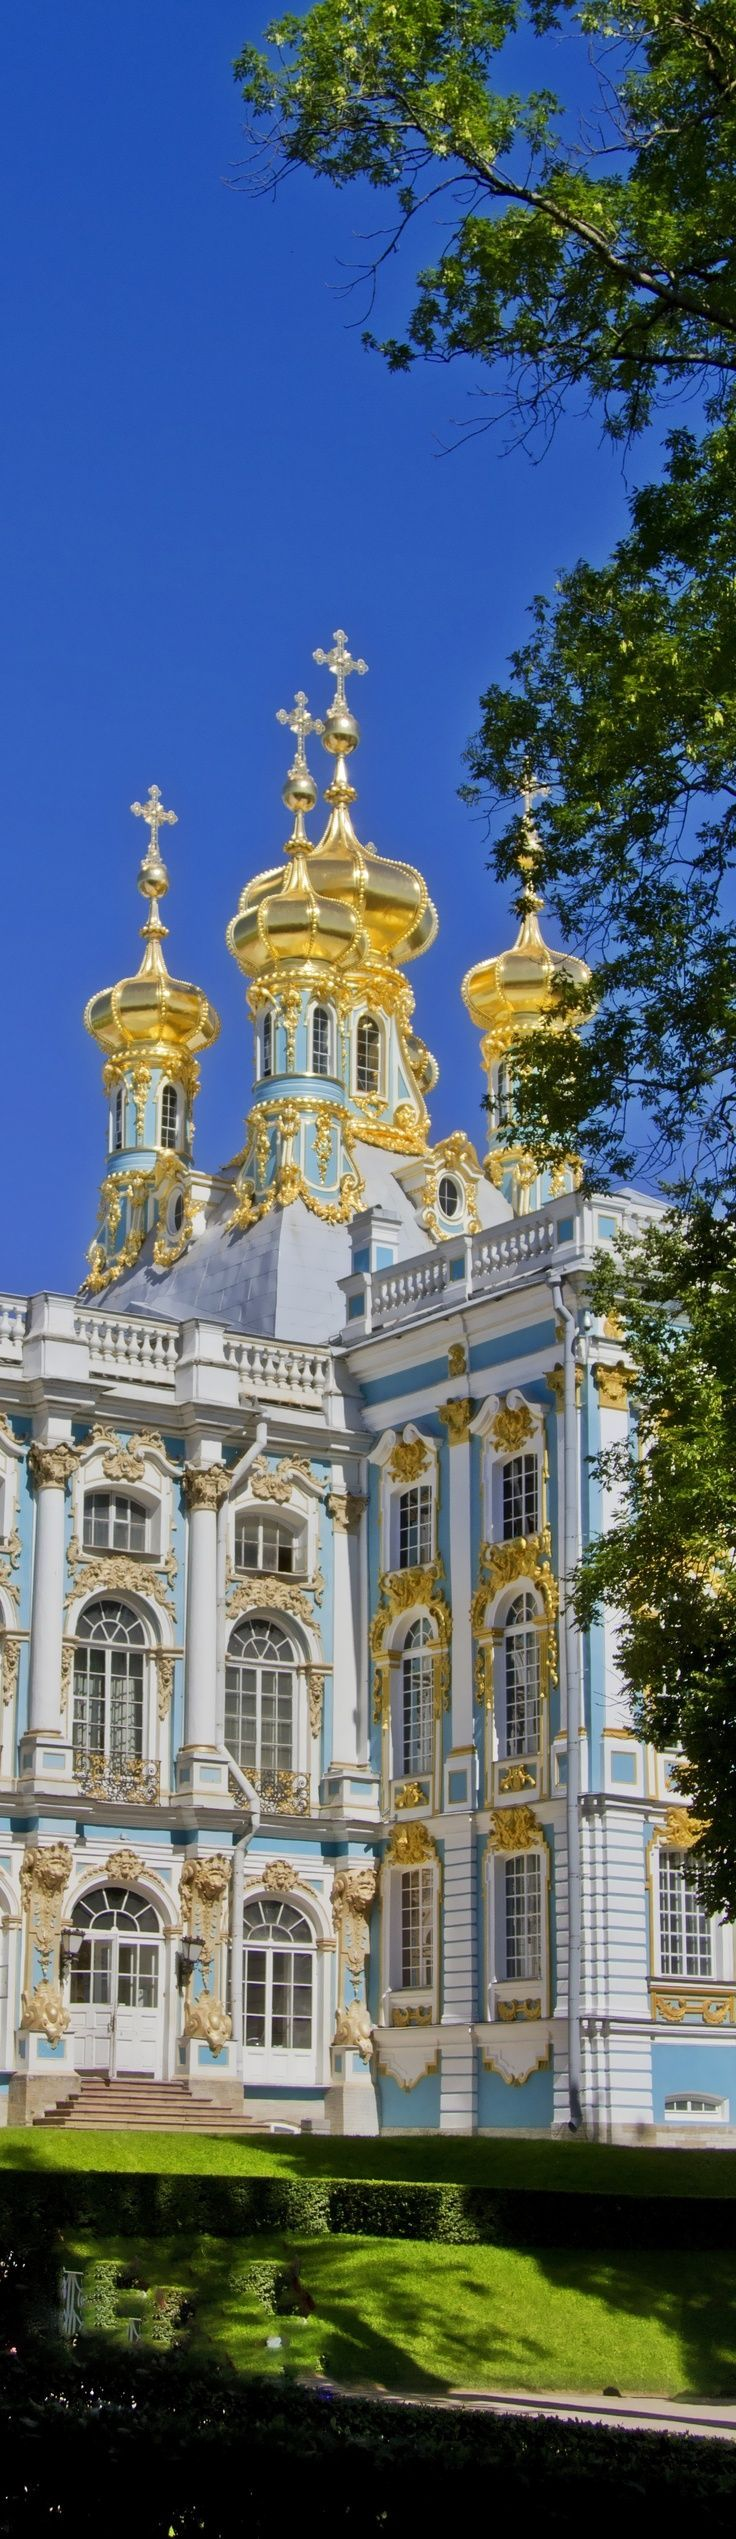 Chapel at the Catherine Palace near St. Petersburg, Russia.